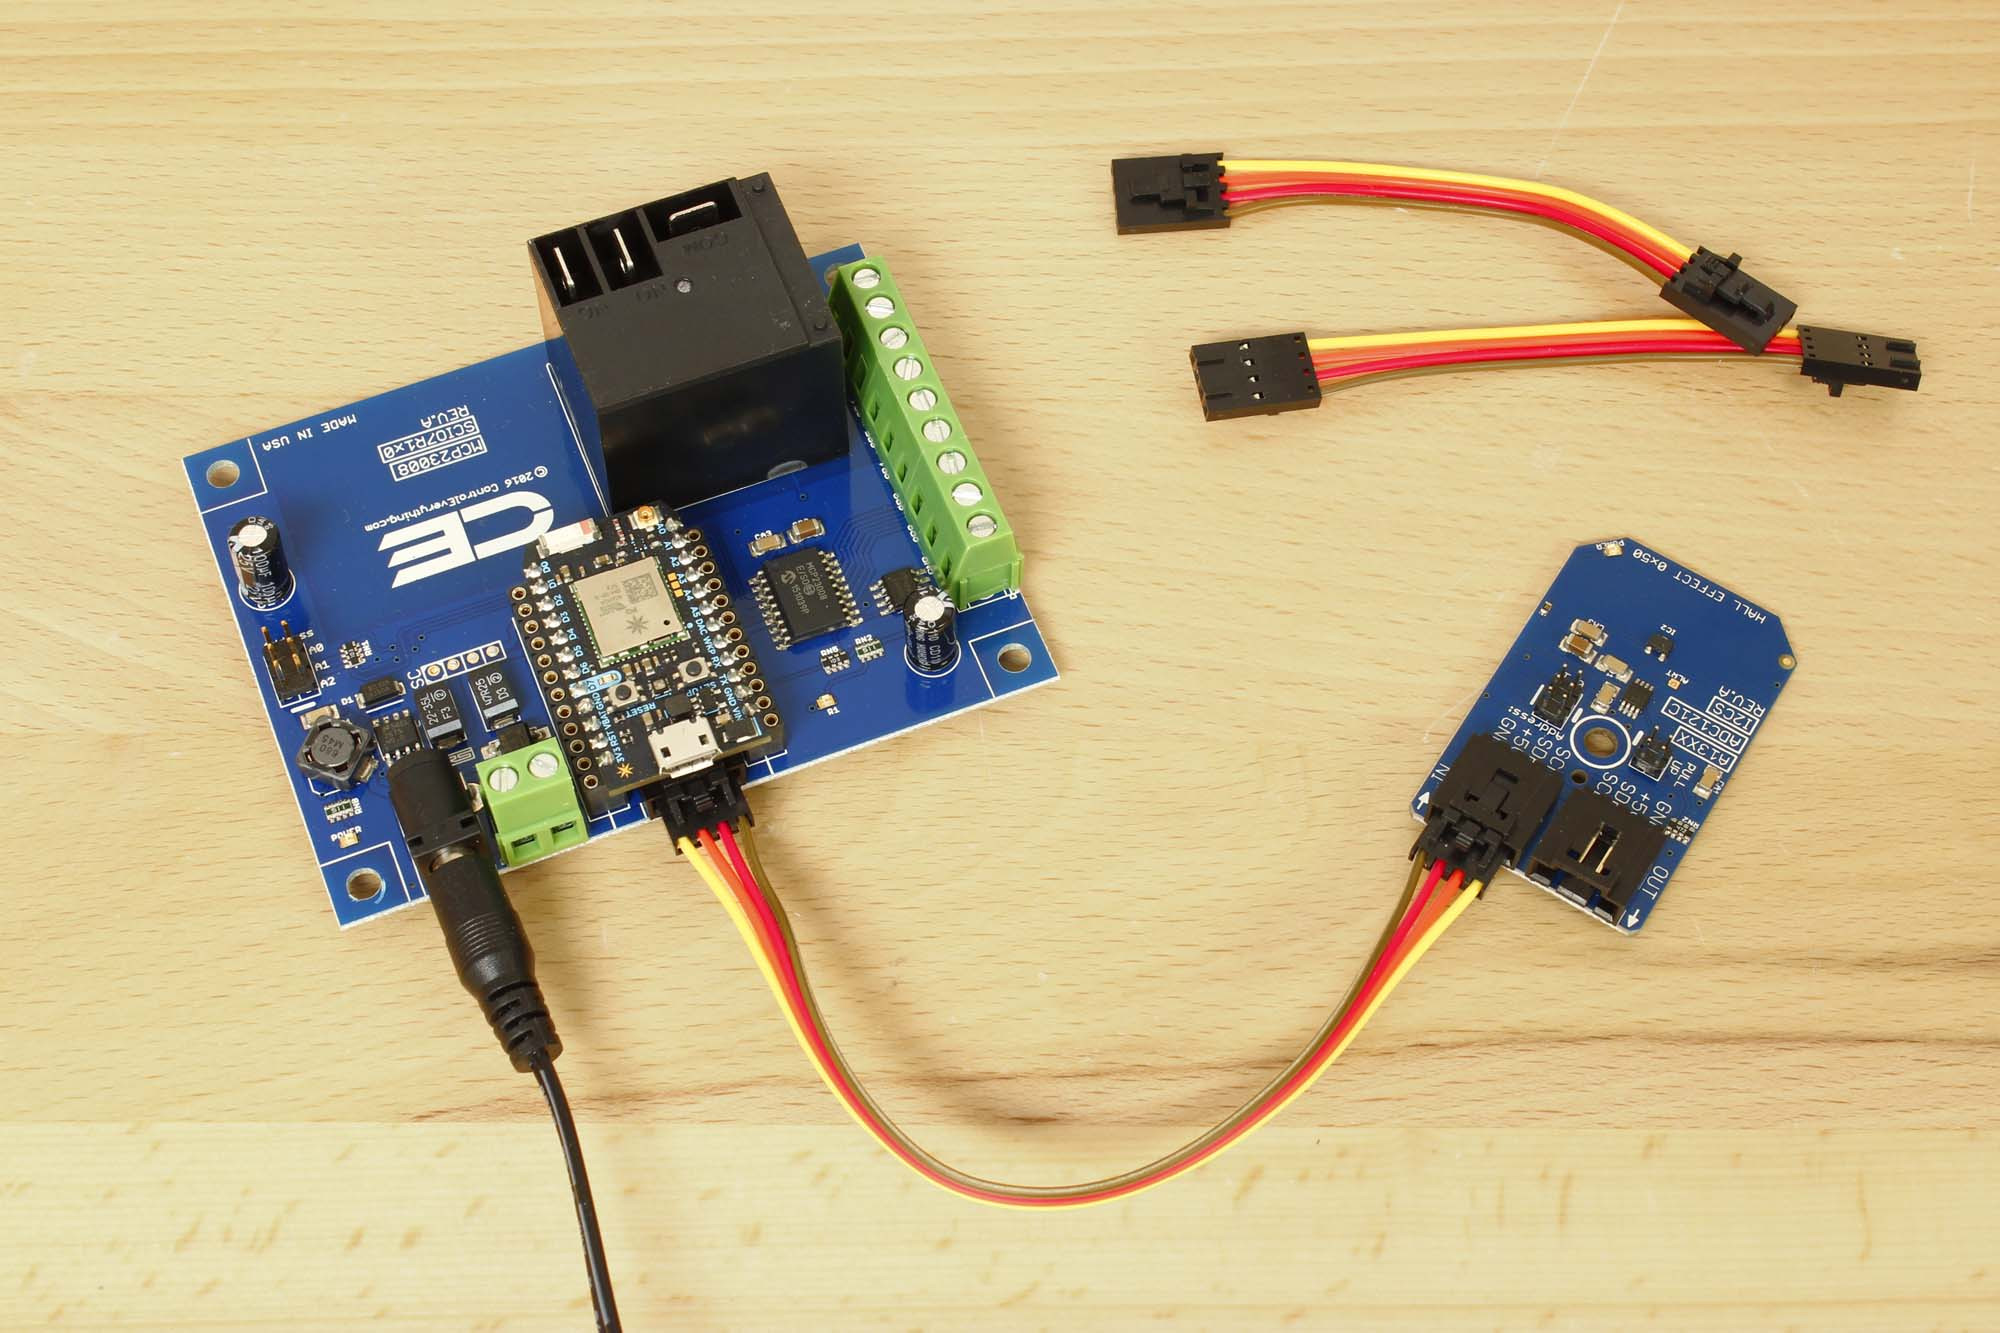 A1325 Hall Effect Sensor 3125 Mv G With Adc121c 12 Bit Resolution Wiring Wireless Position